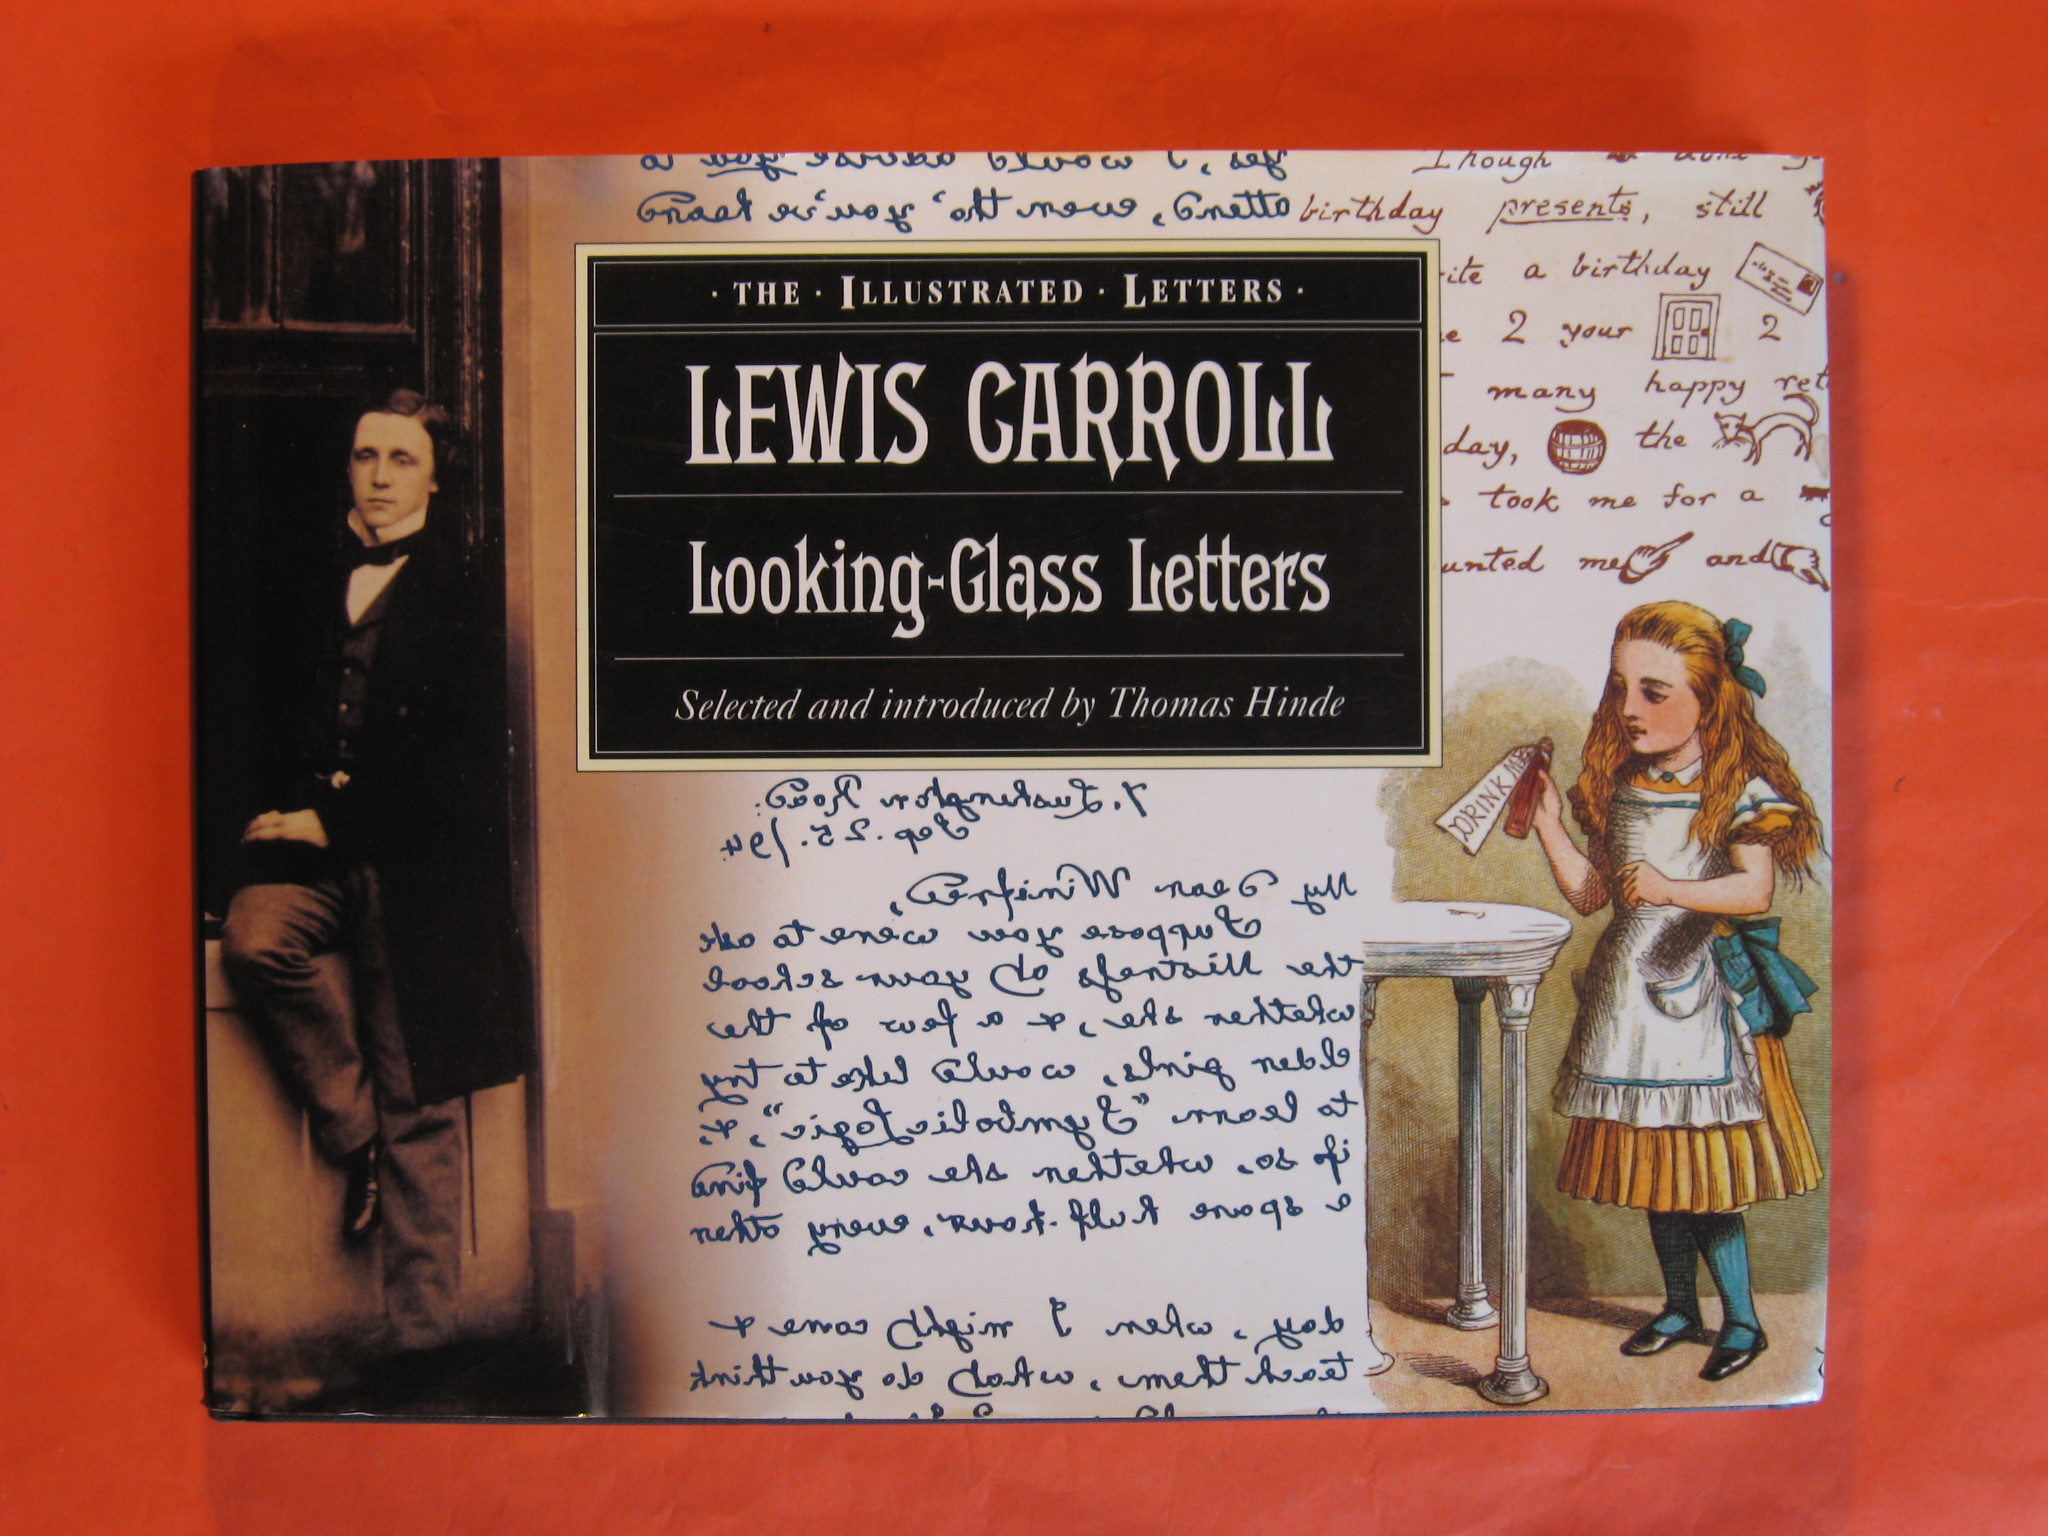 Looking-Glass Letters:  Selected and Introduced by Thomas Hinde, Carroll, Lewis